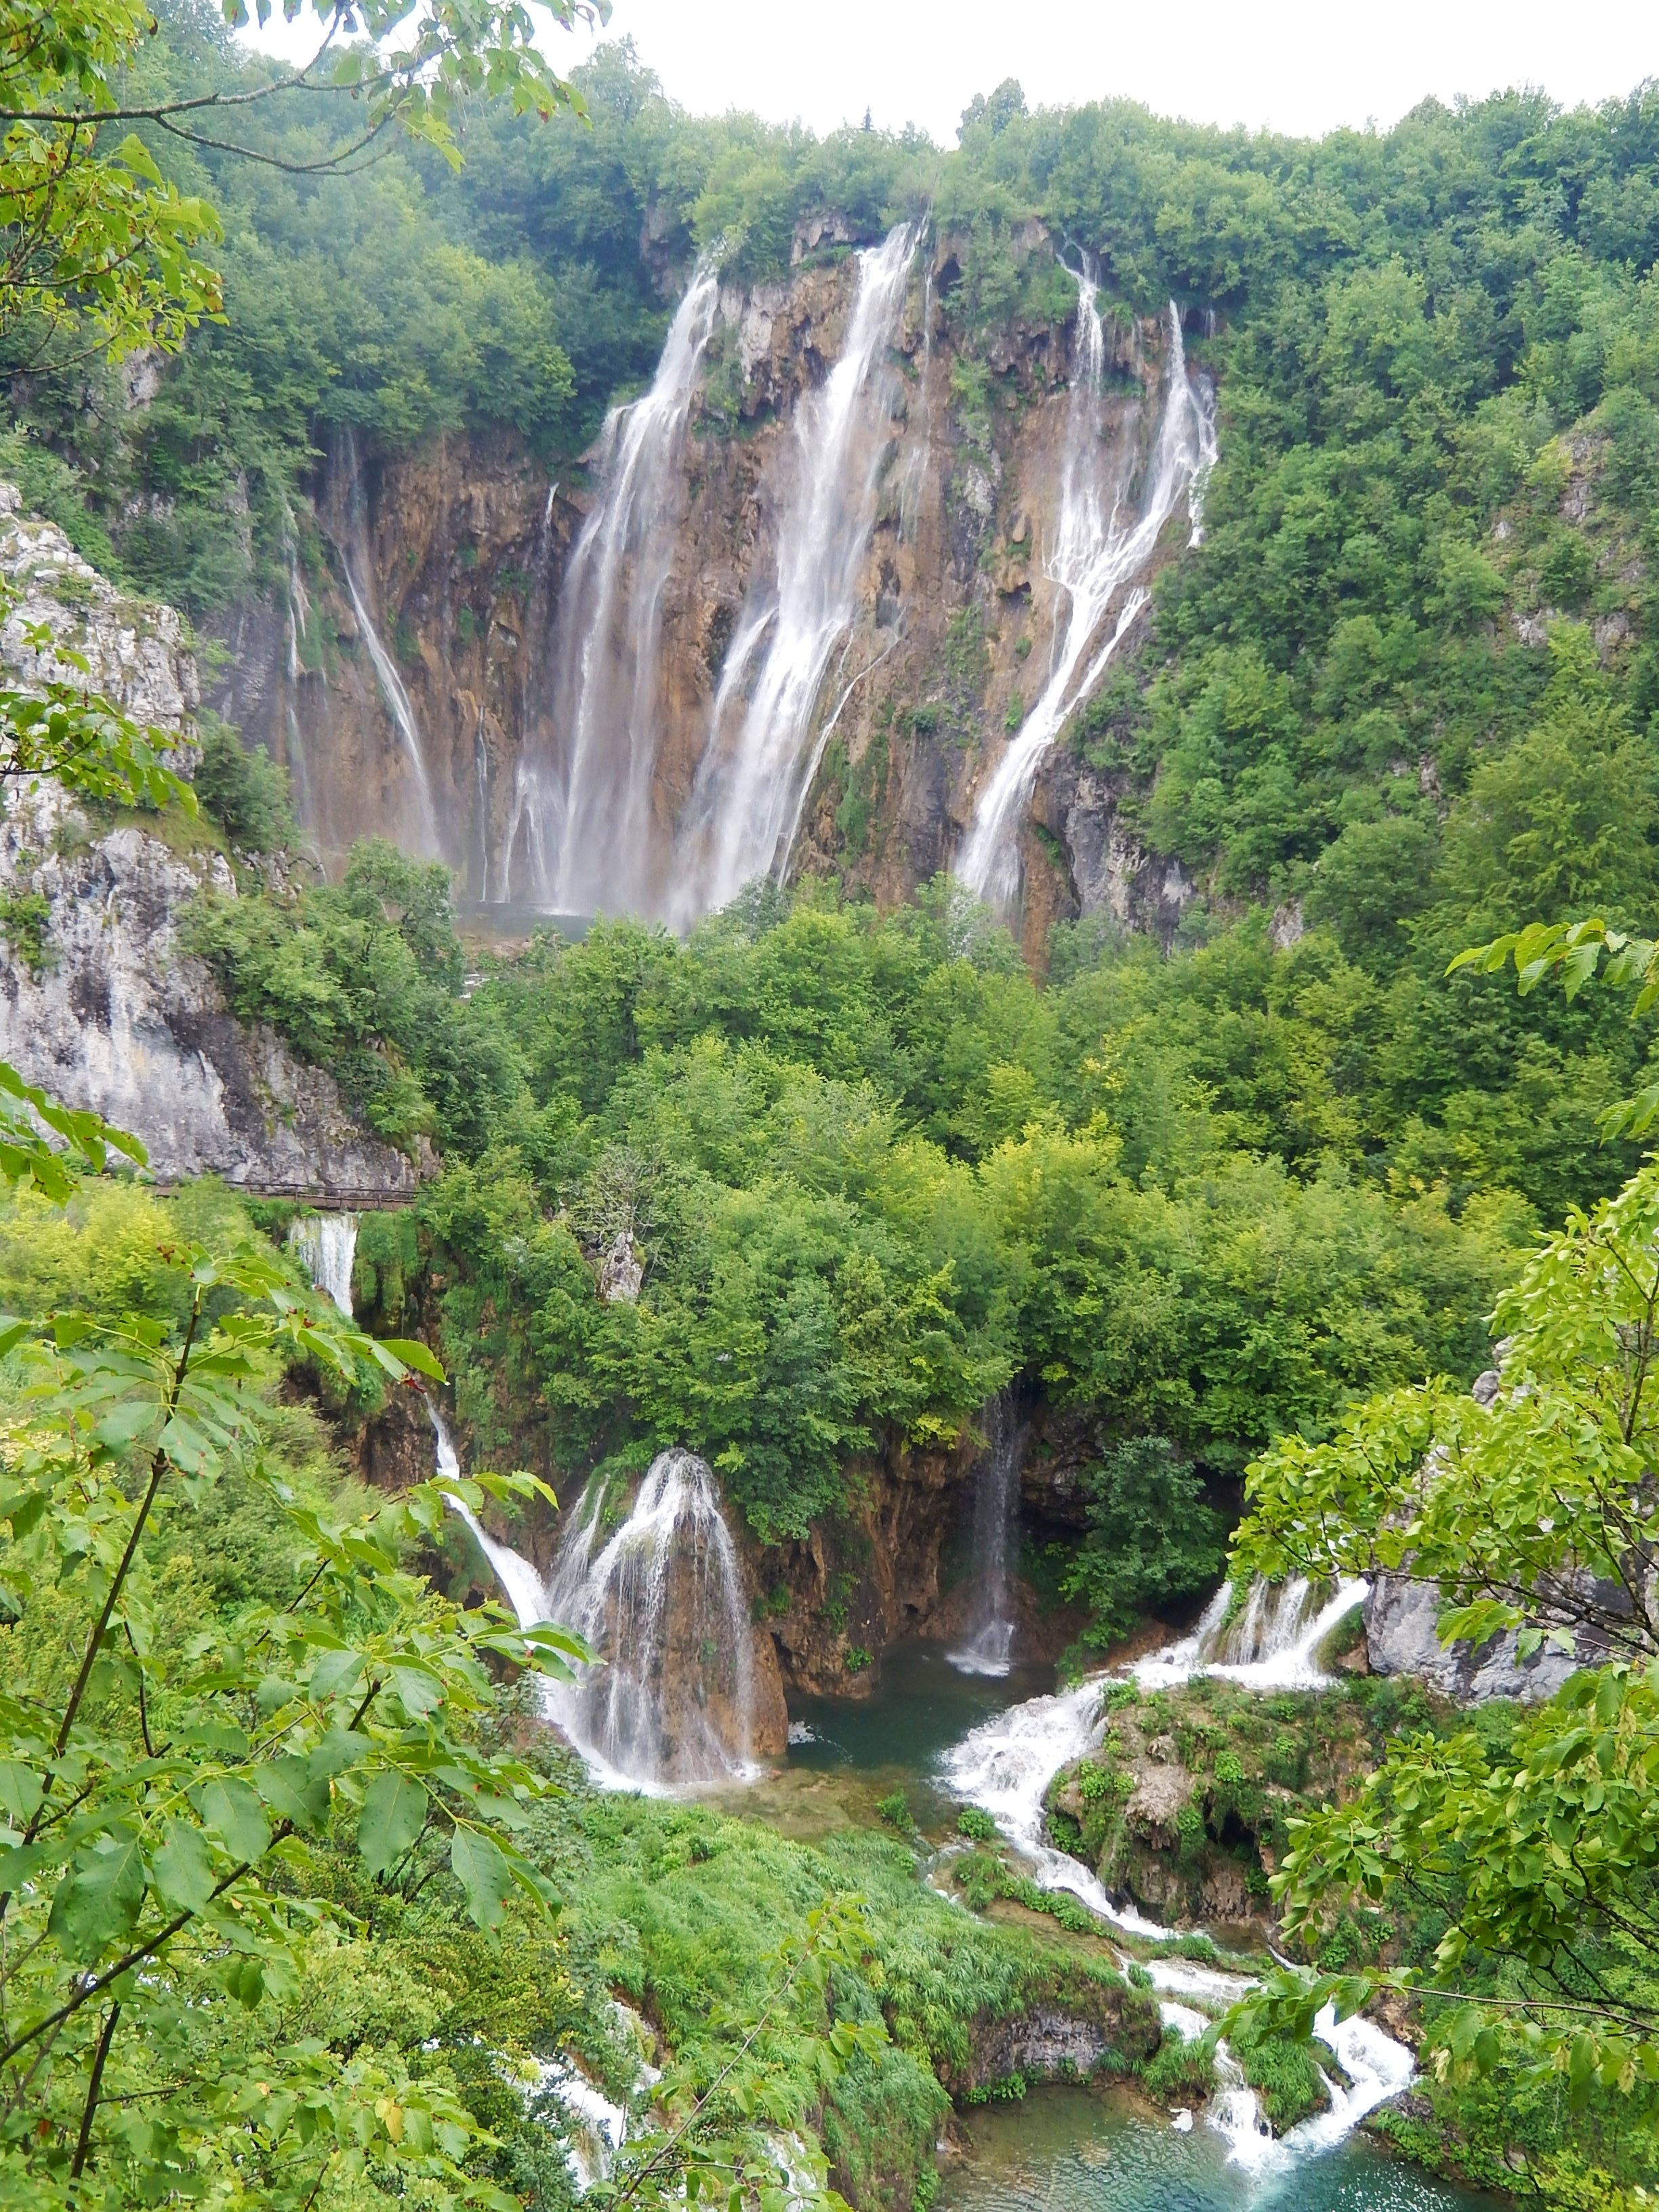 Plitvice Lakes National Park: A Day In Plitvice Lakes